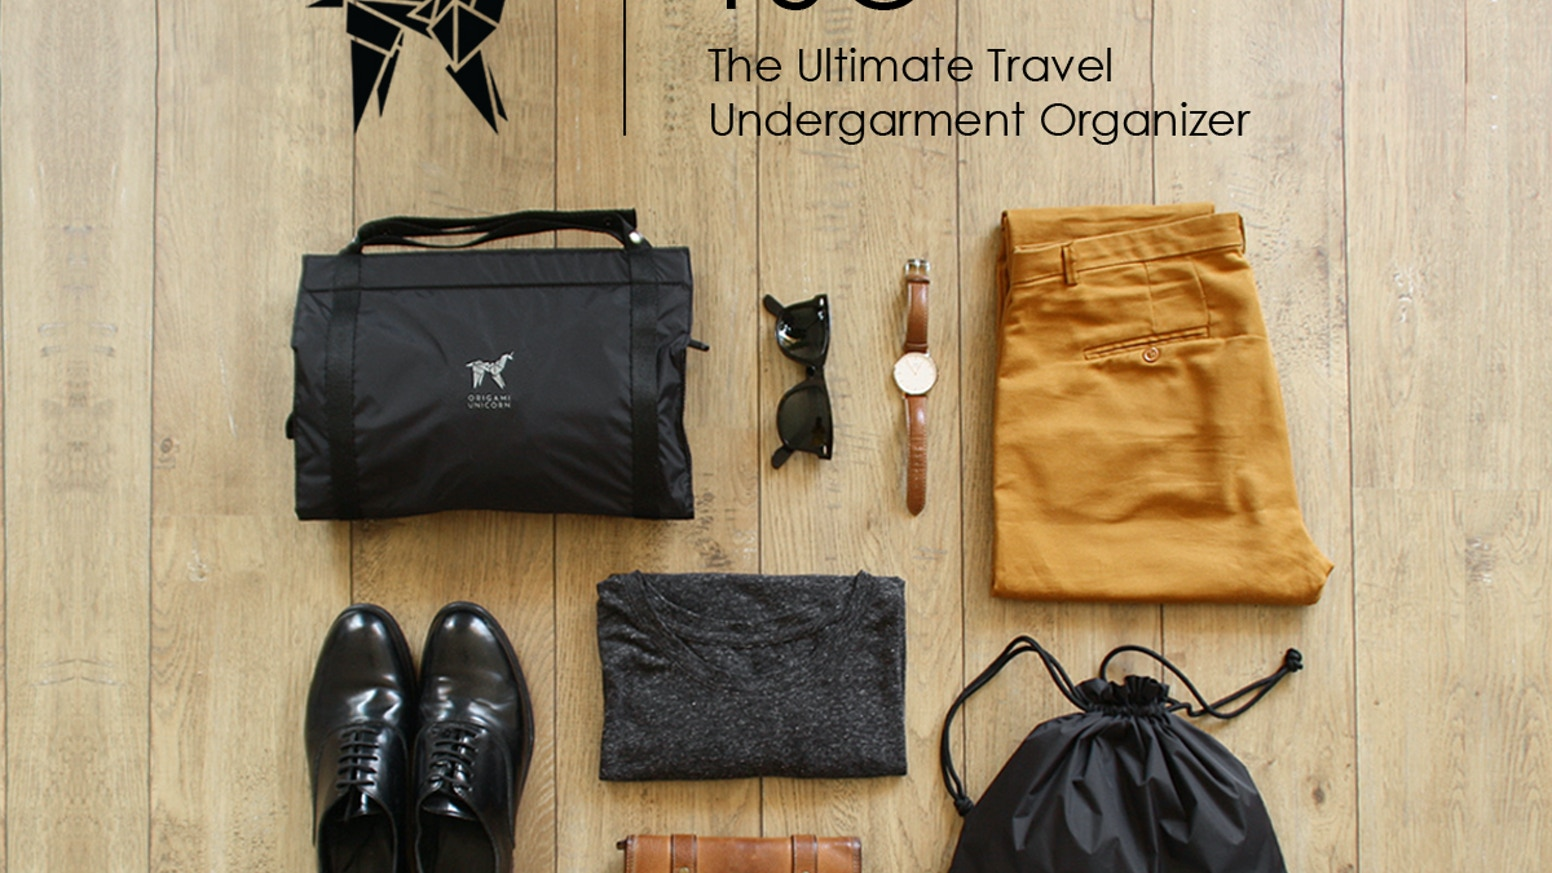 TUO,The Travel Undergarment Organizer: Pack your suitcase better, keep it organized in your hotel room